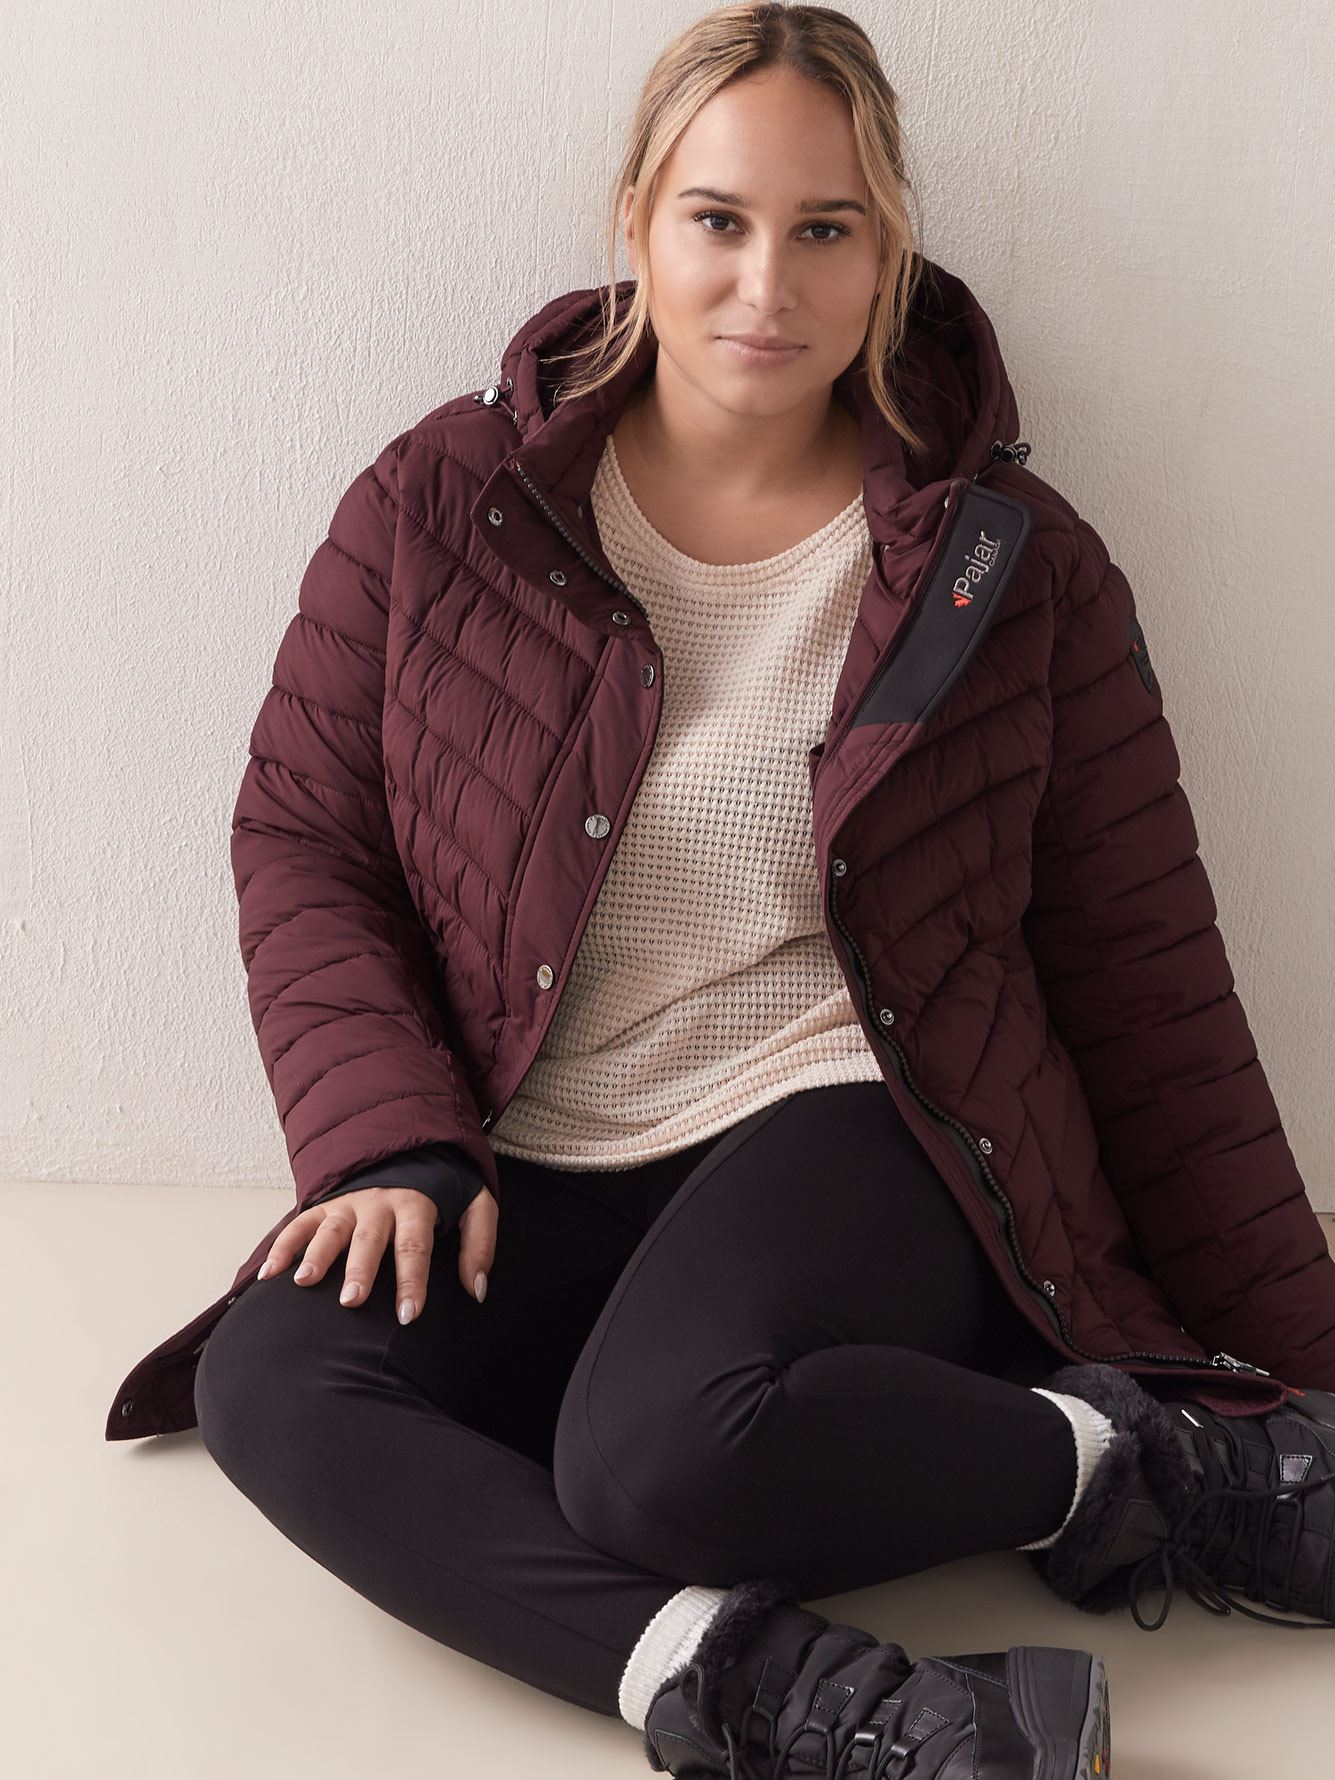 Milly Lightweight Puffer Coat - Pajar